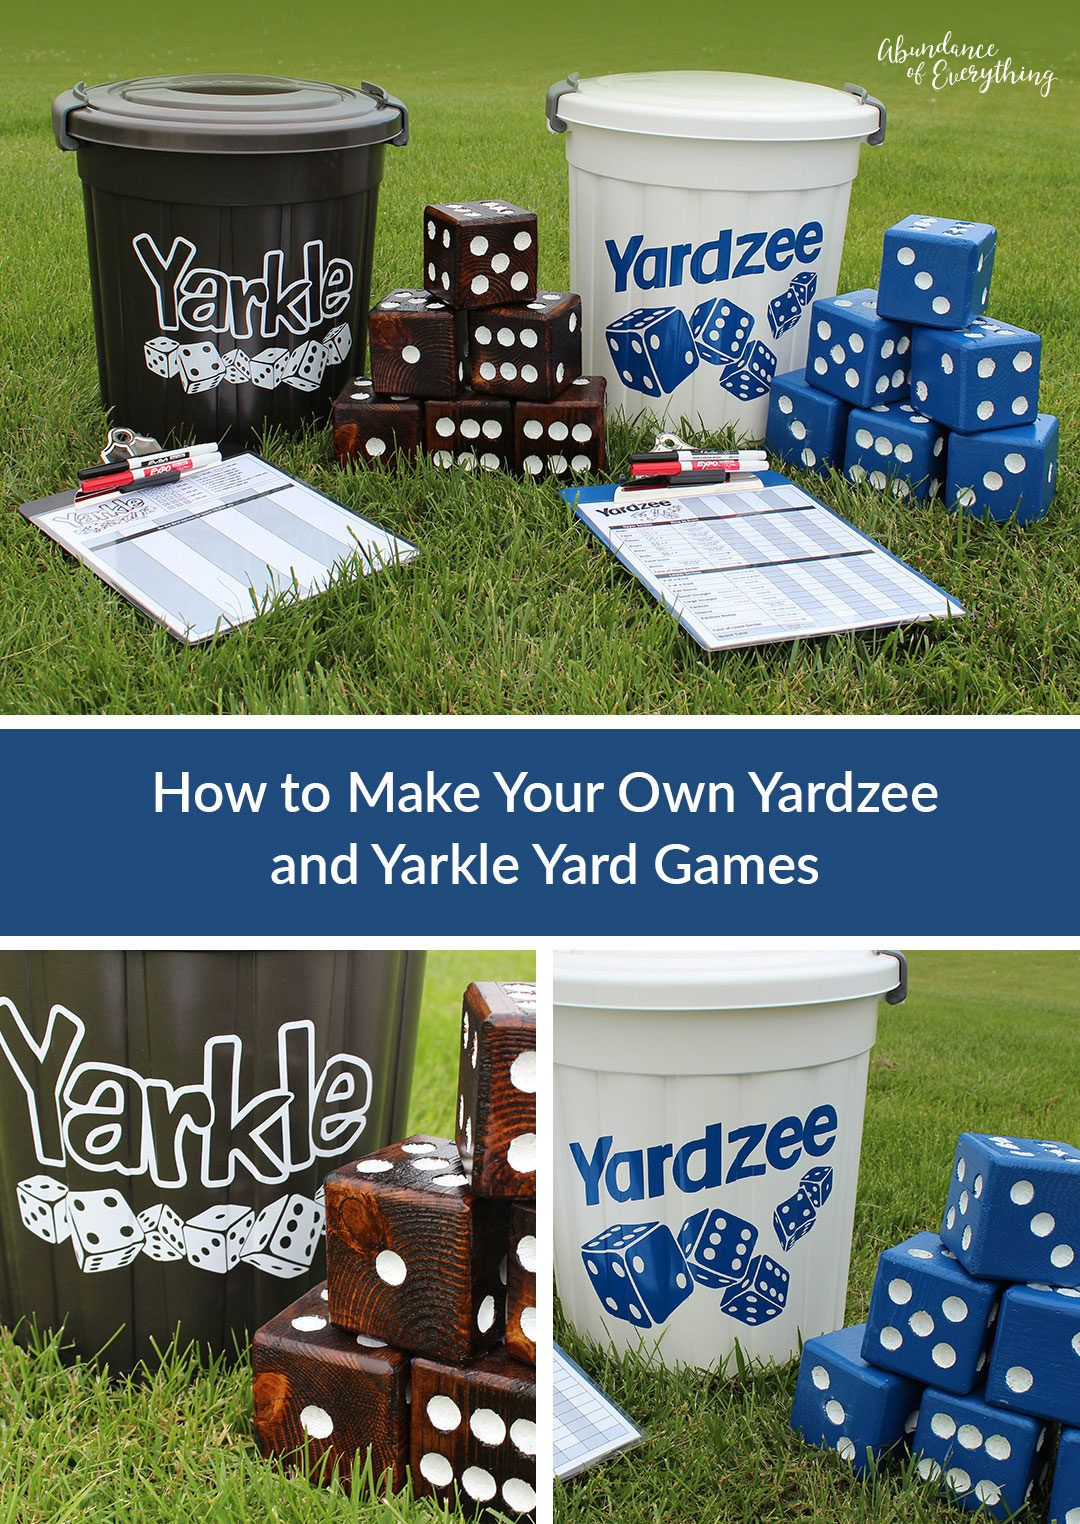 Summer Is Finally Here And What Better Way To Enjoy The Outdoors With  Family And Friends Than Some Classic Yard Games; Yardzee And Yarkle.